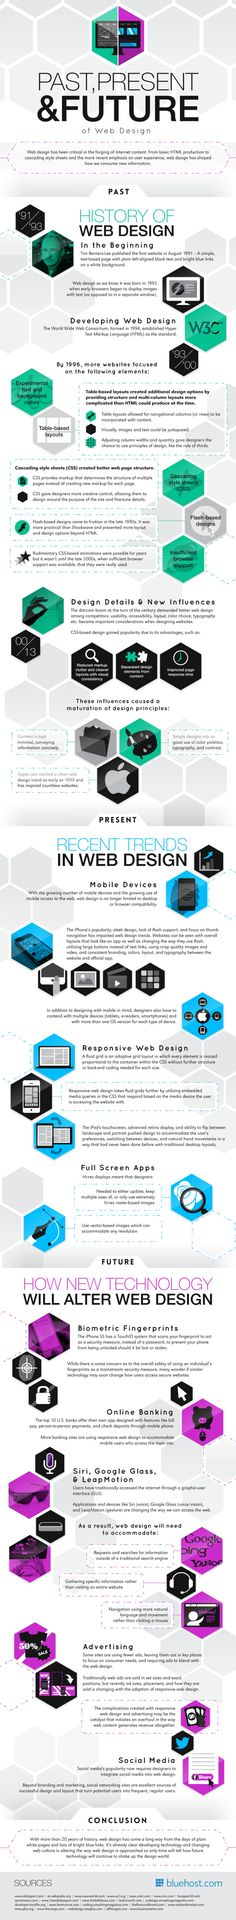 Past, Present & Future of #WebDesign // Subscribe to vitaleads.com for #webdevelopment and #graphicdesign leads